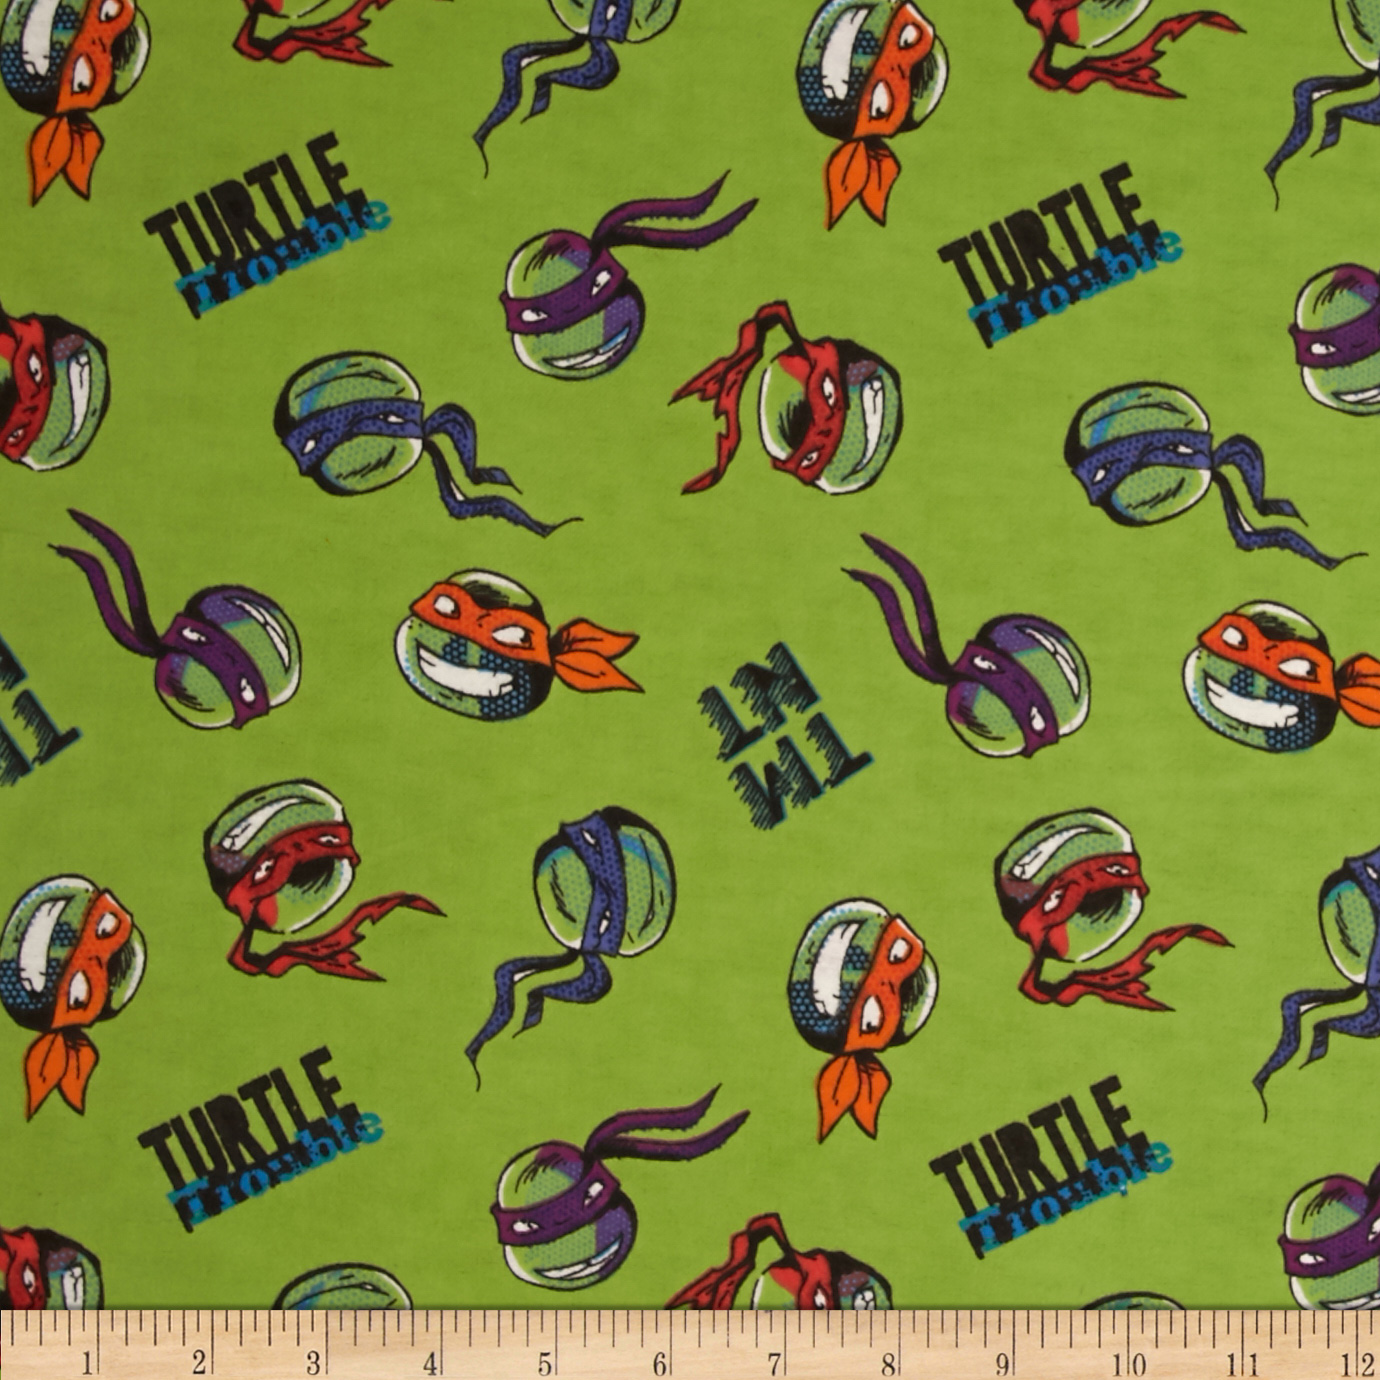 Nickelodeon Tmnt Flannel Turtle Trouble Green Fabric